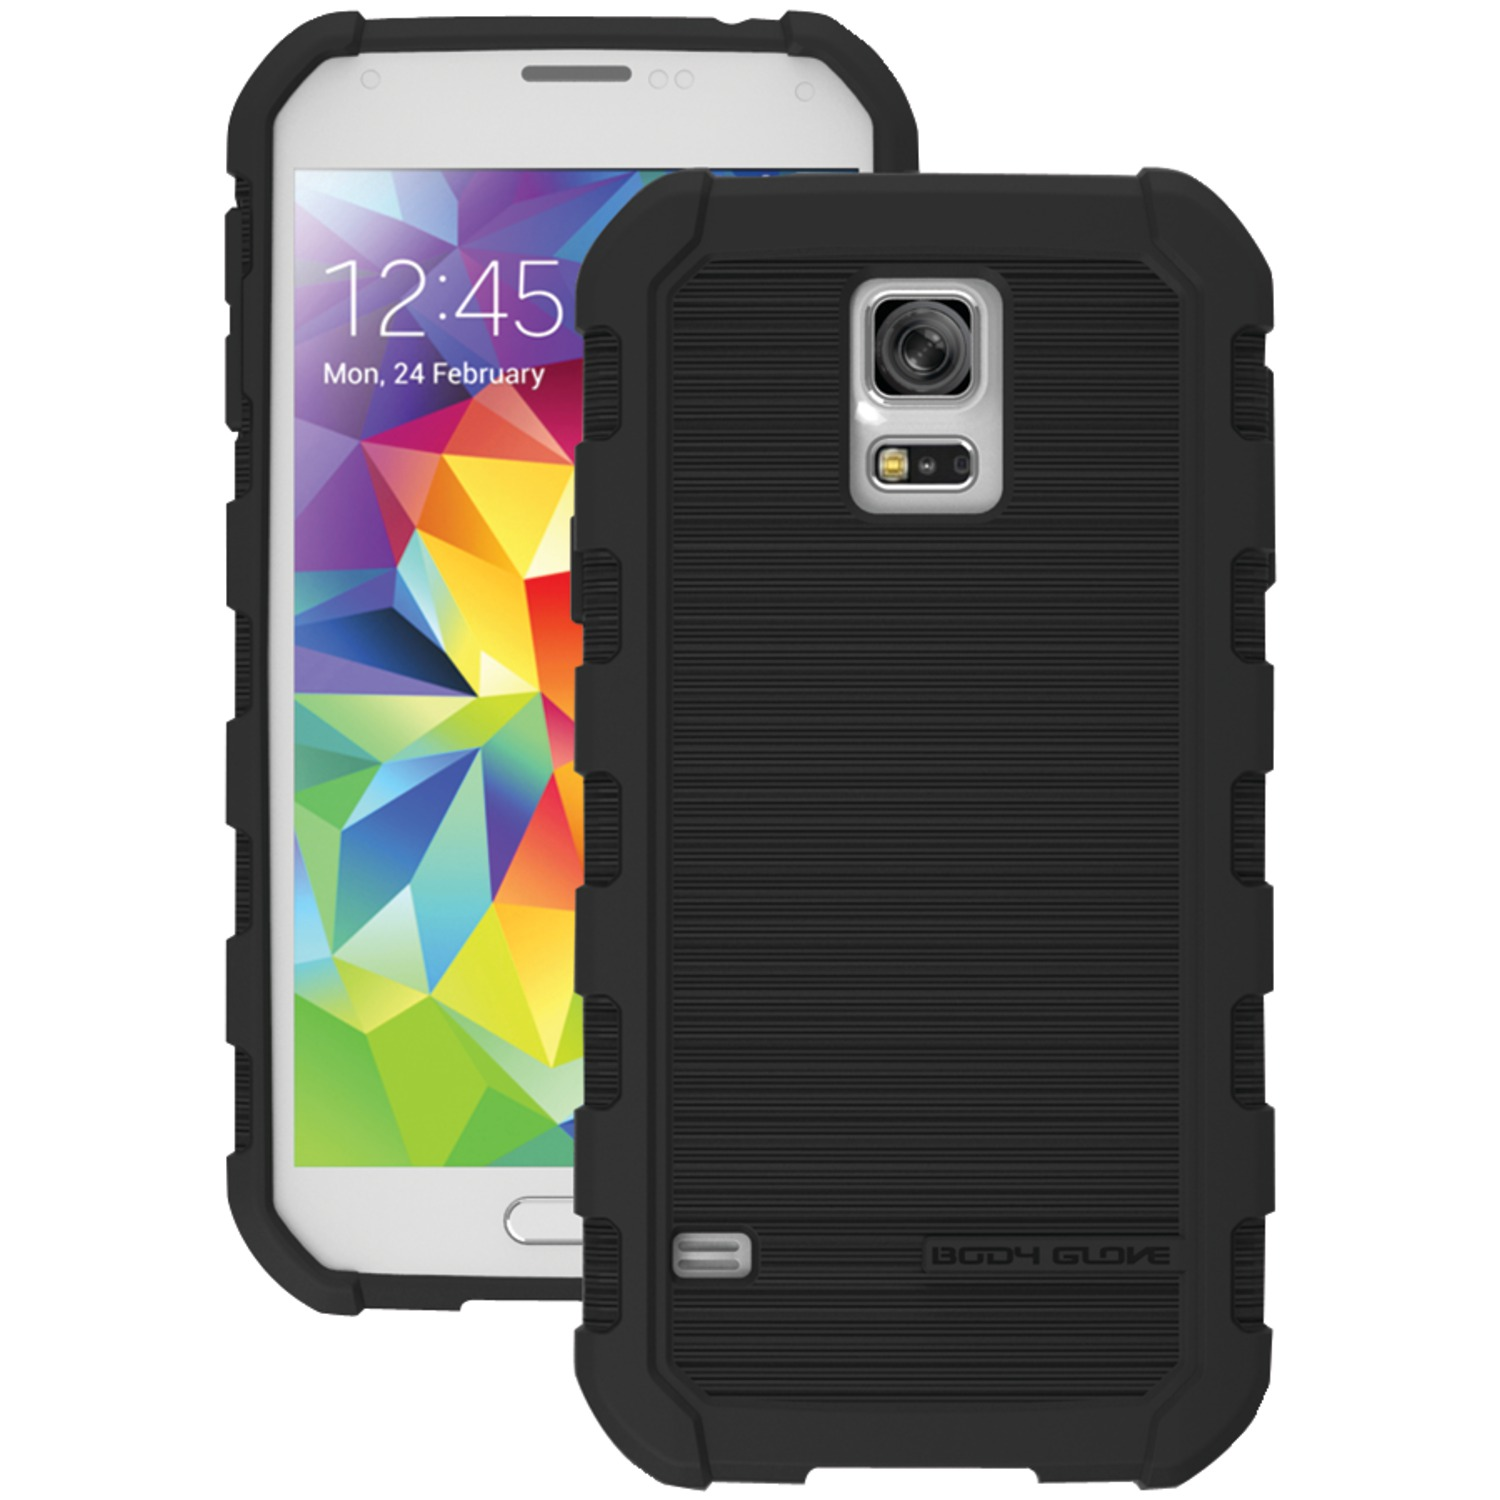 body glove case study Choose from a wide selection of protective body glove mobile phone cases  body glove provides protection for brands like apple, samsung, lg & htc.